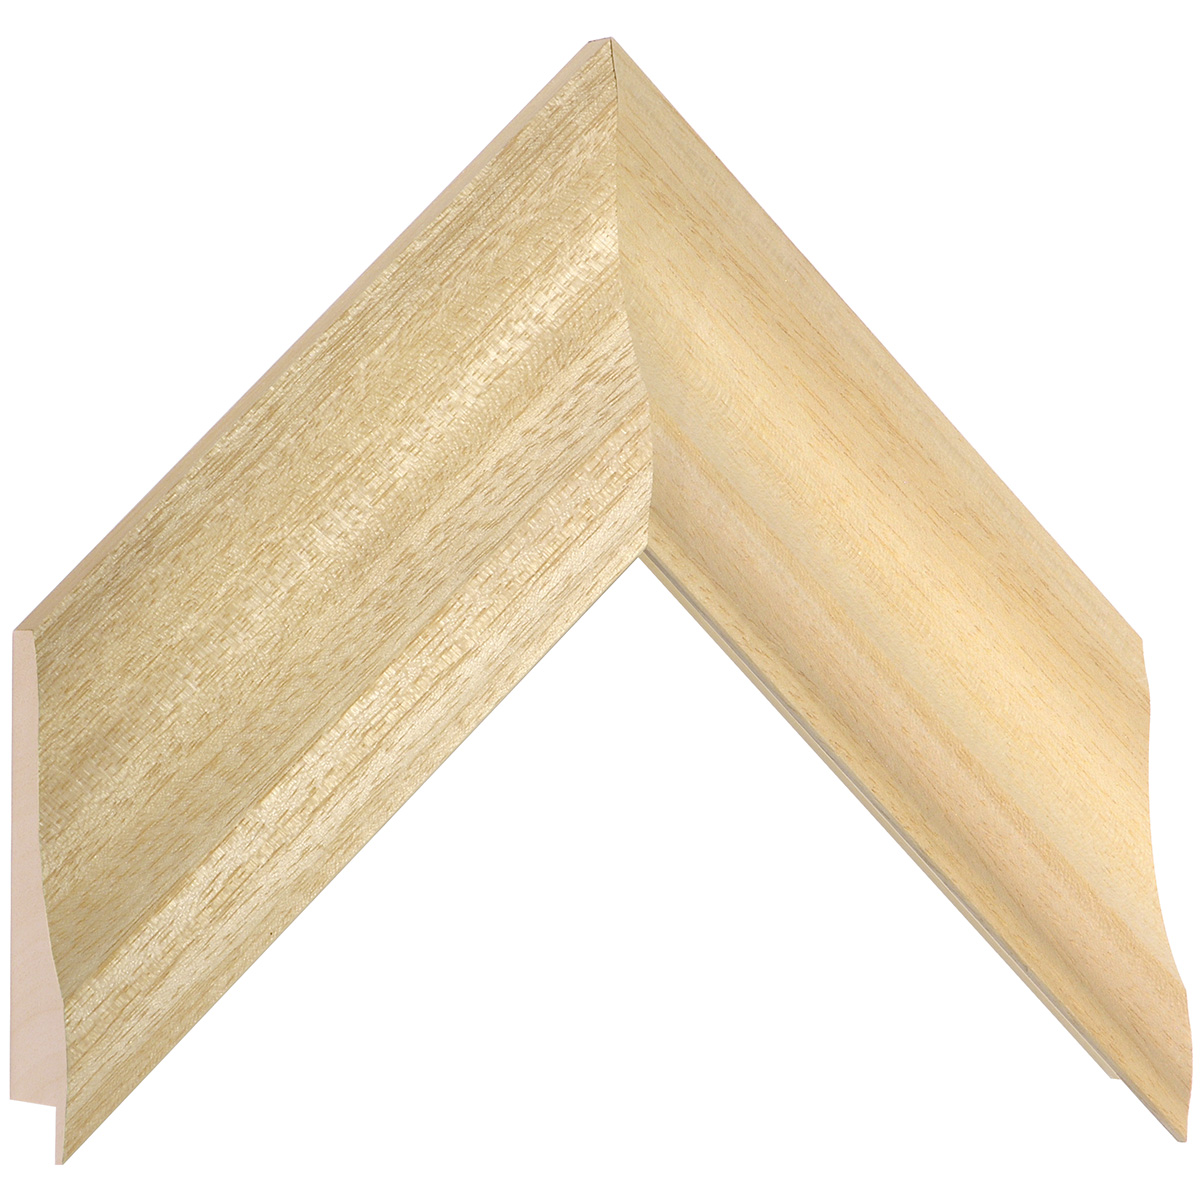 Moulding ayous, width 68mm, height 32mm, bare timber